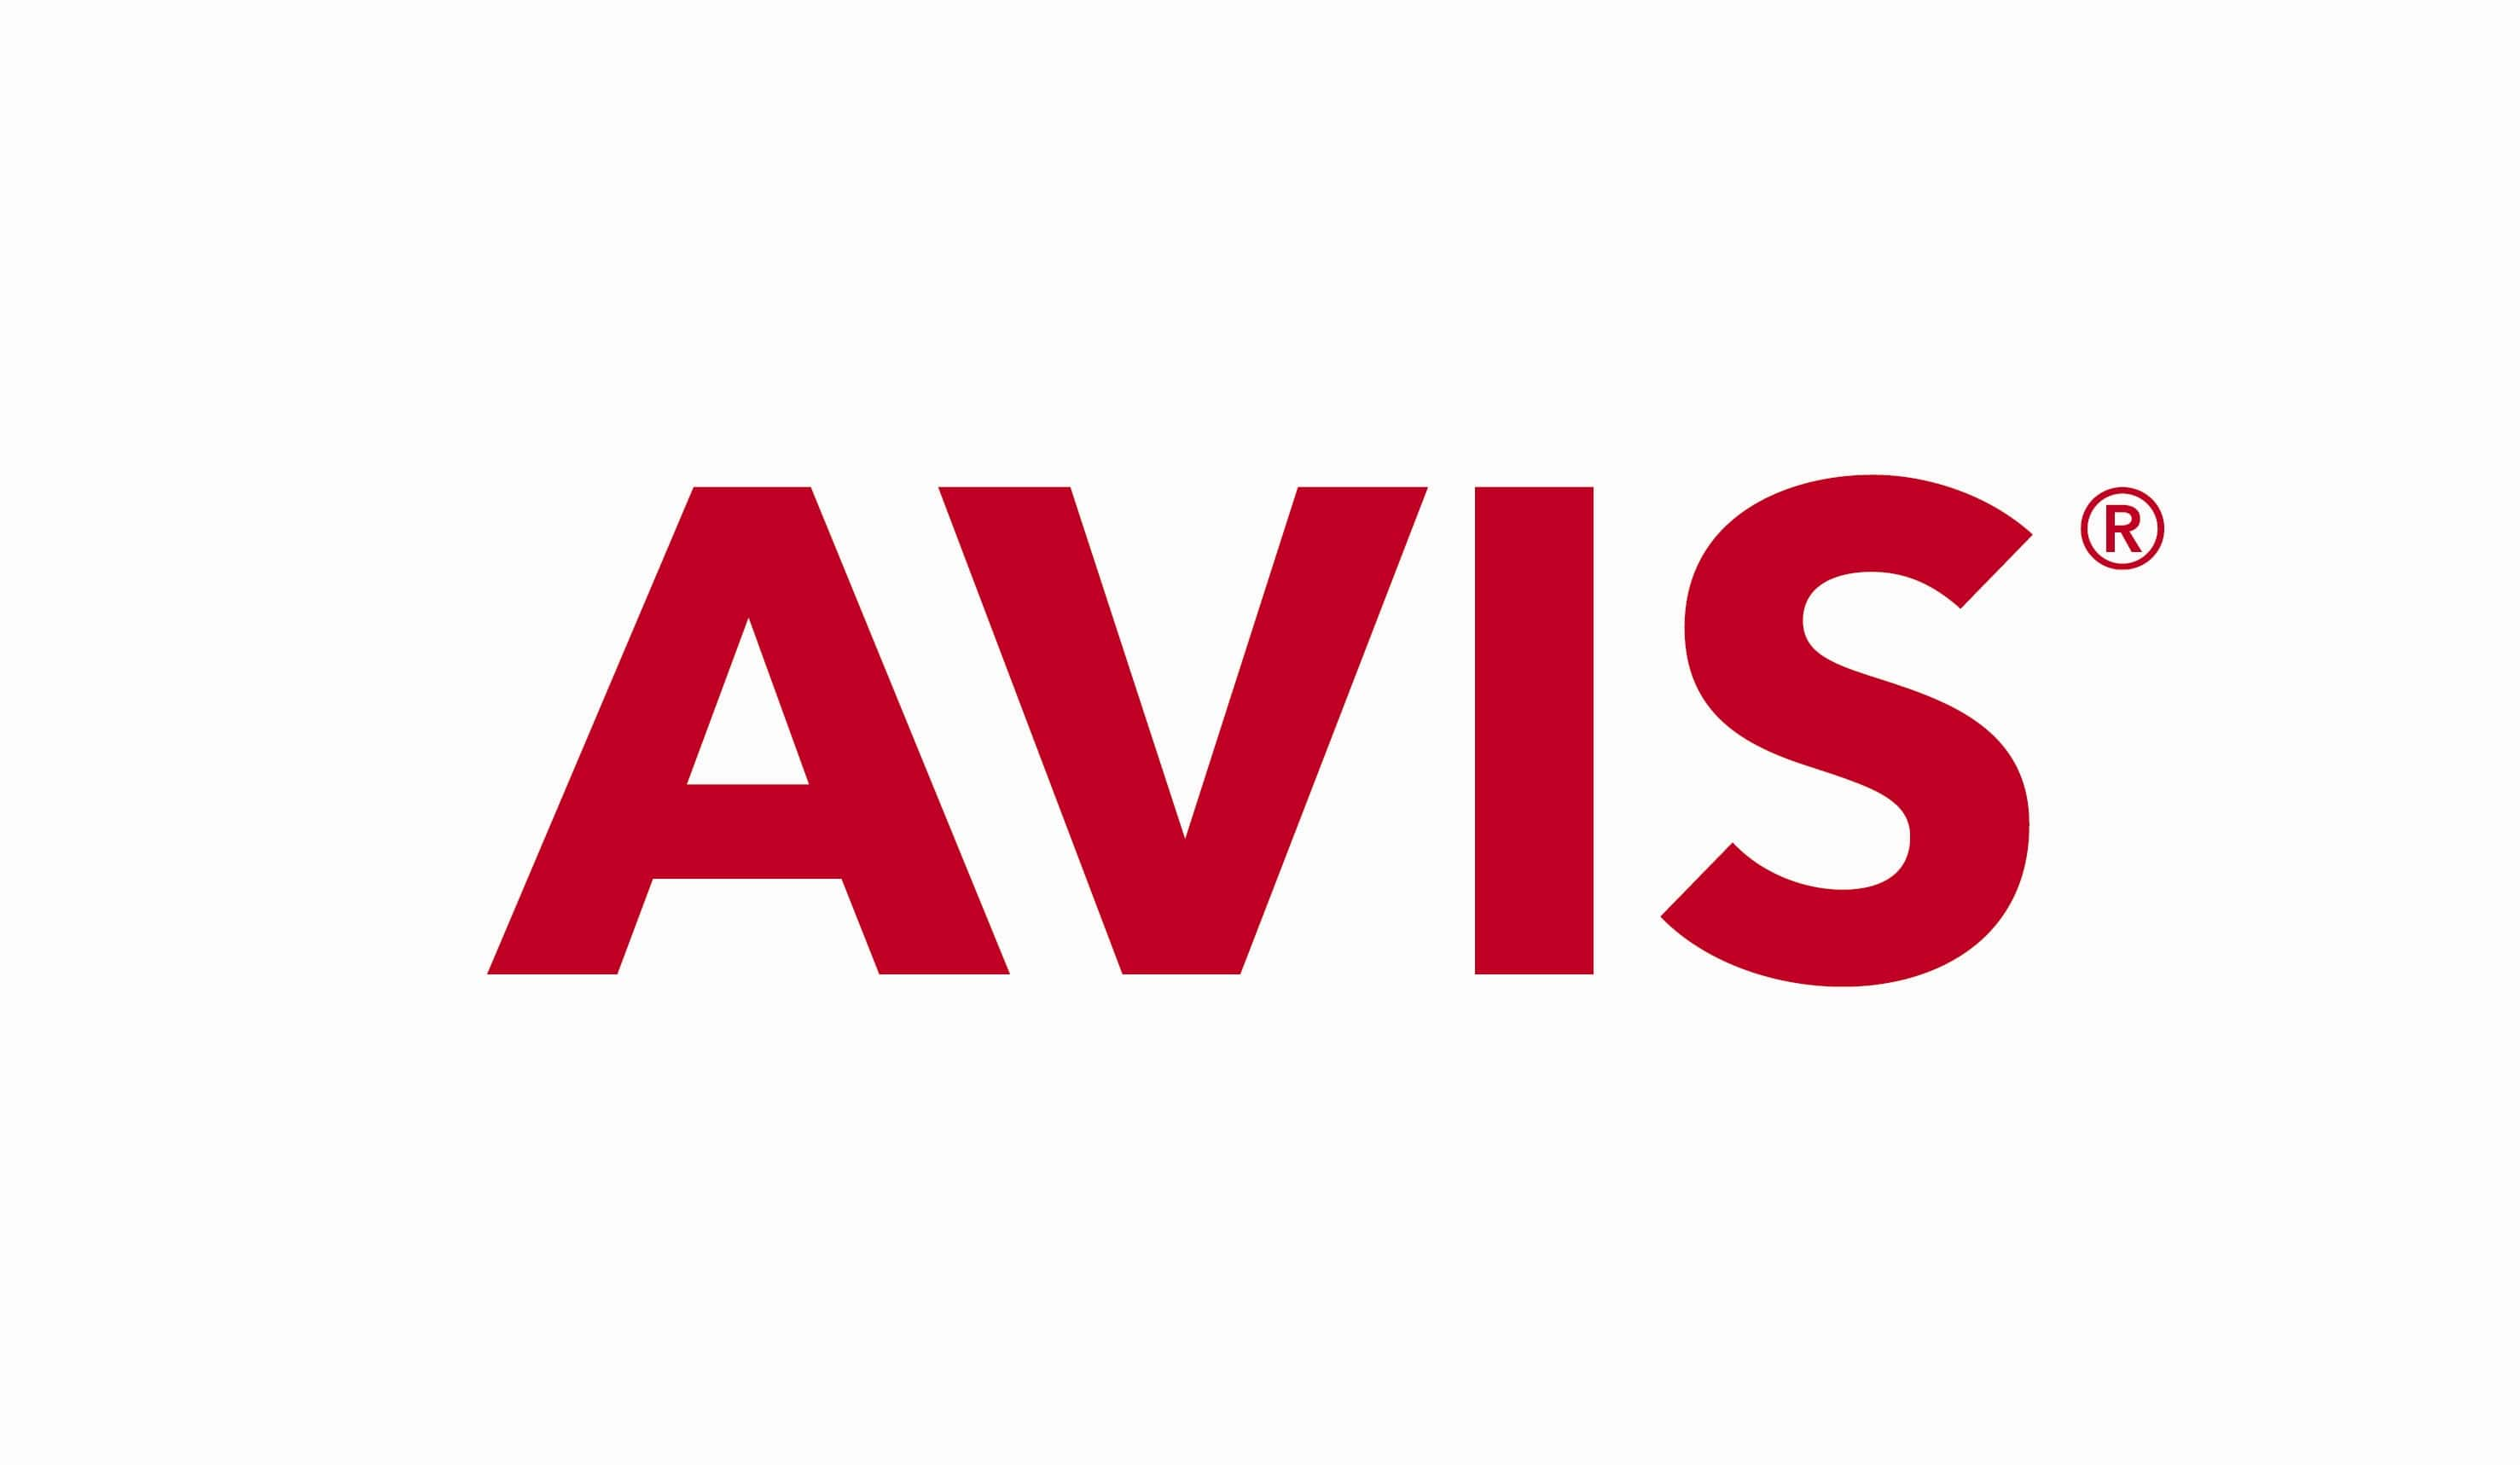 At most Avis locations in Canada and the U.S., with pay now rates you'll enjoy up to 30% off base rates. When you select a pay now rate, you are required to prepay toward your rental on avis.